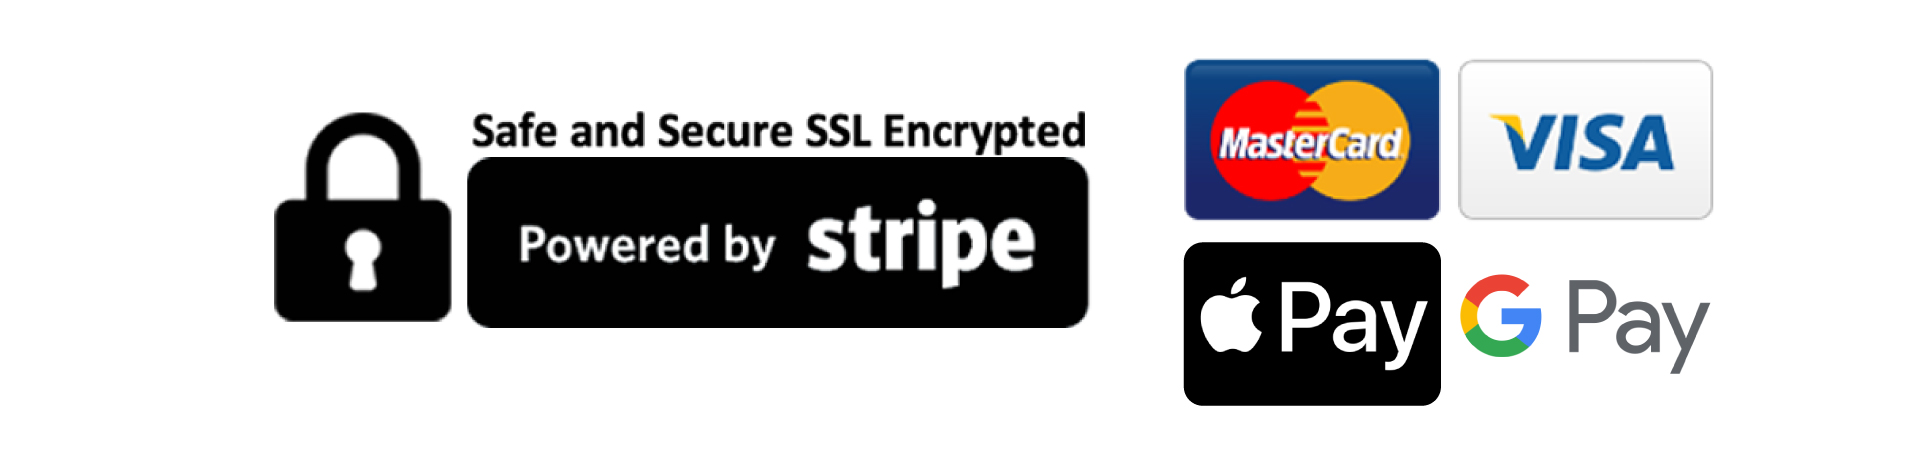 Secure payments powered by stripe1